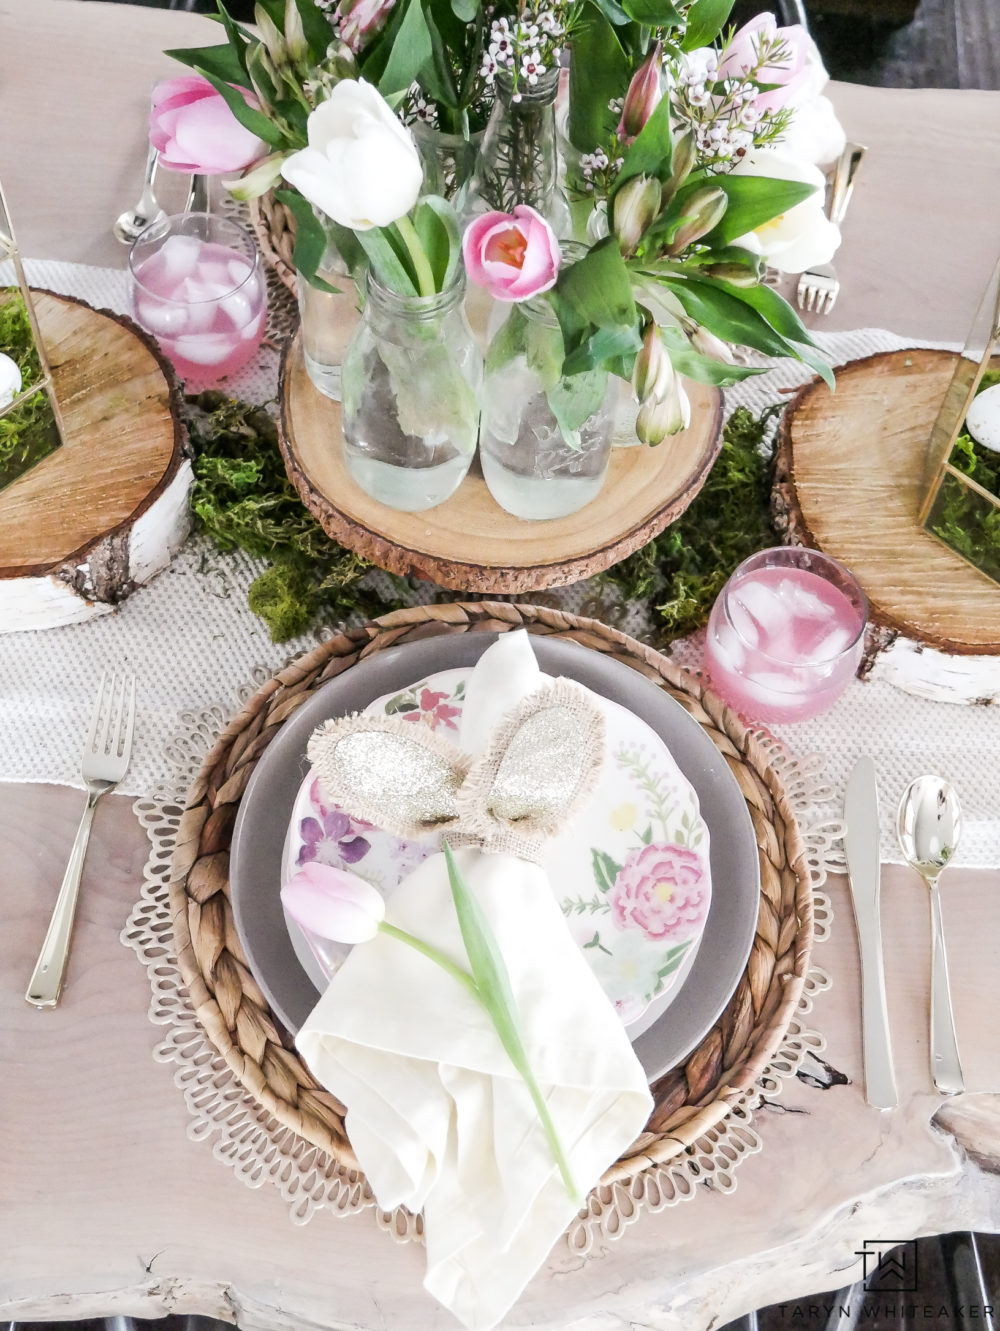 Looking for fresh Easter Table Ideas? Easily recreate this Enchanting Pink and Green Easter Table that incorporate lots of moss and wood rounds with pops of fresh flowers!